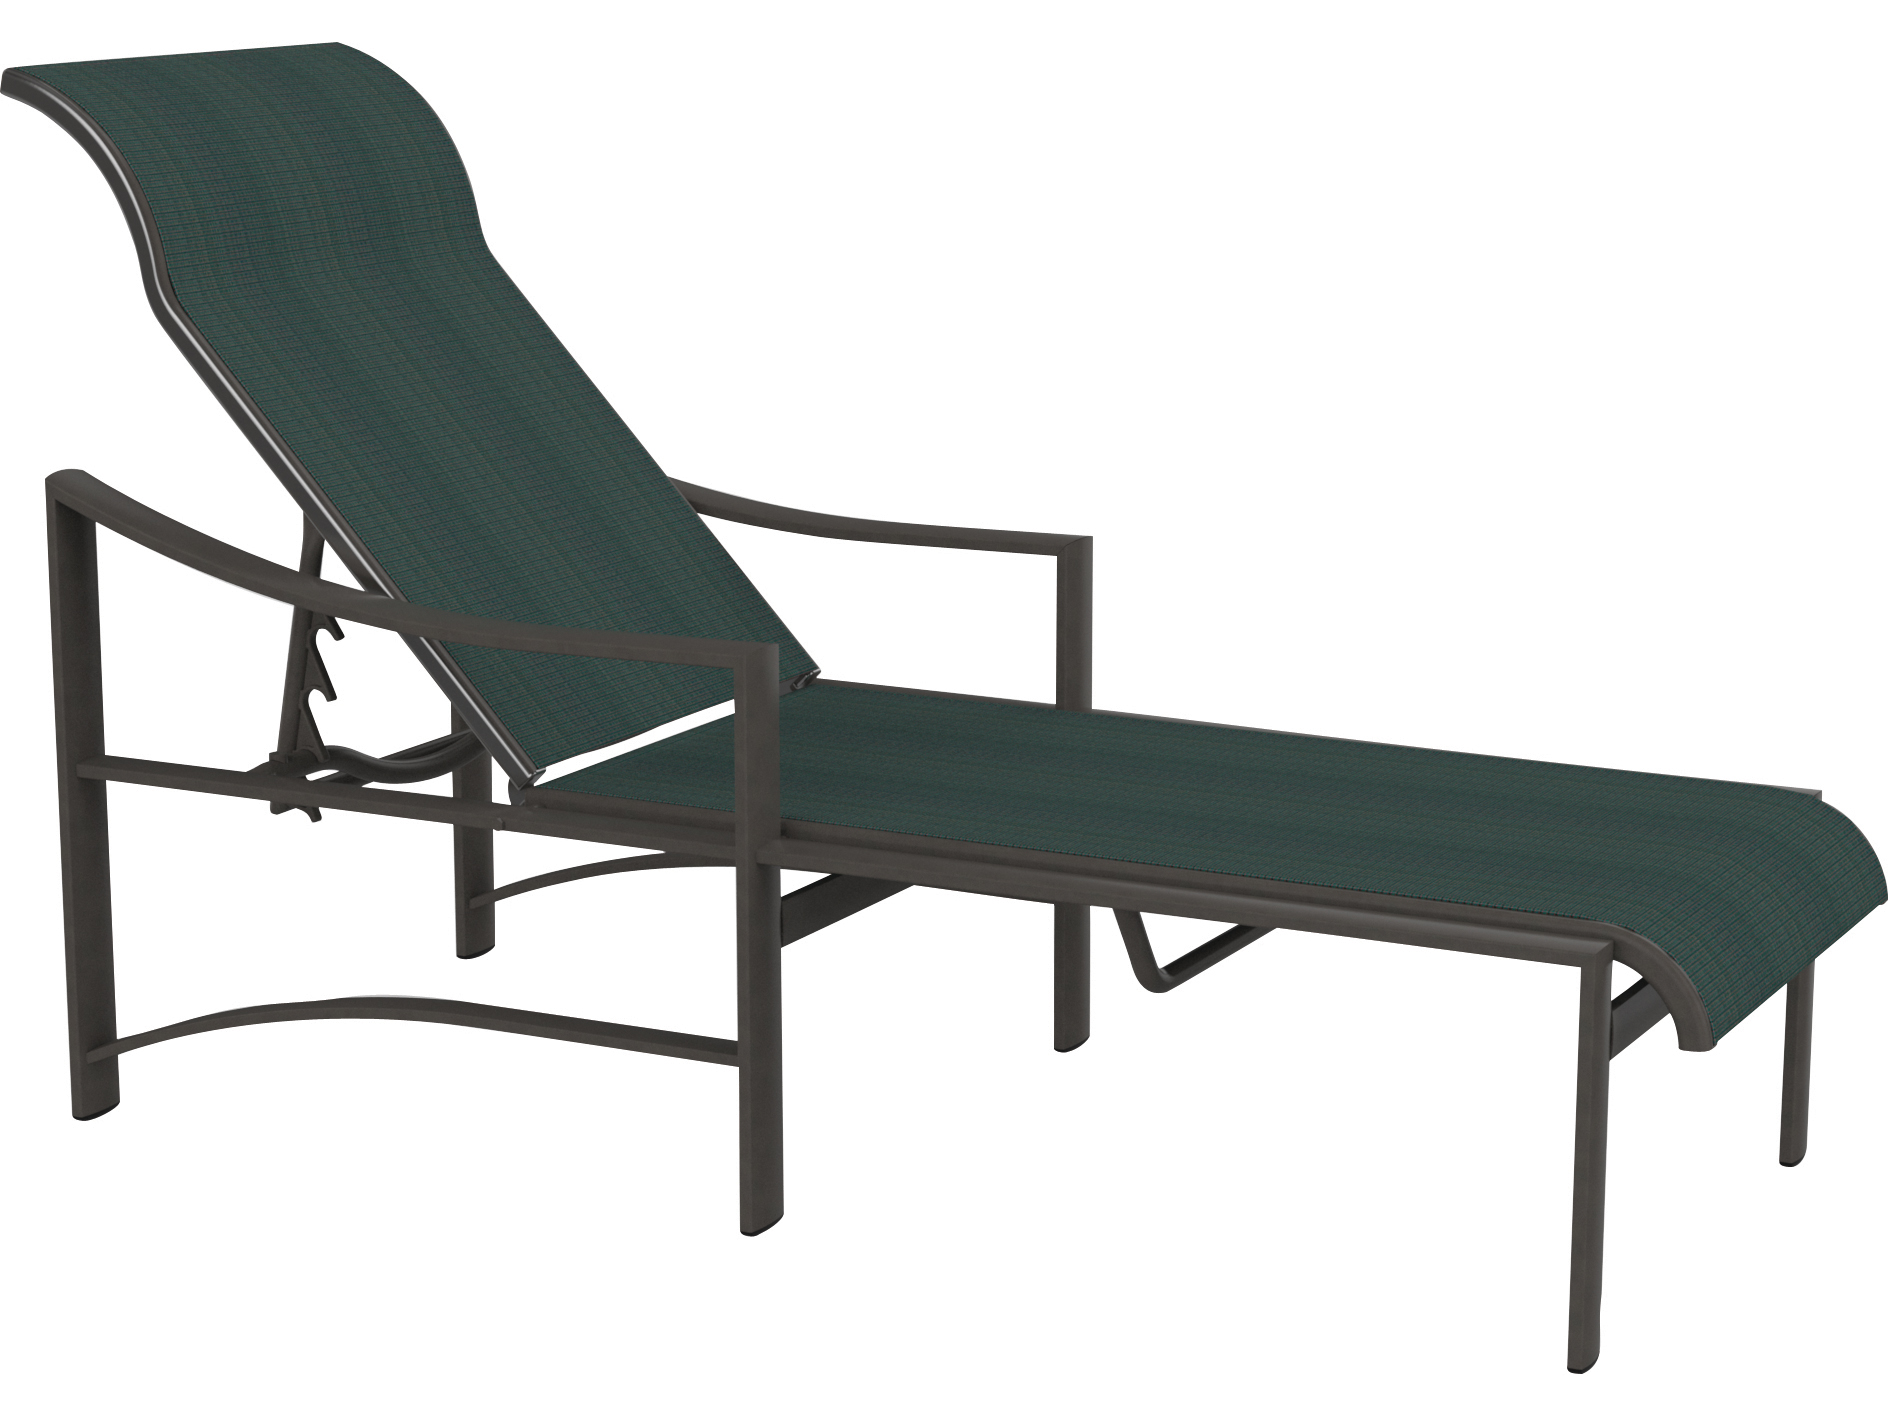 Tropitone kenzo sling aluminum chaise lounge 381532 for Aluminum chaise lounges